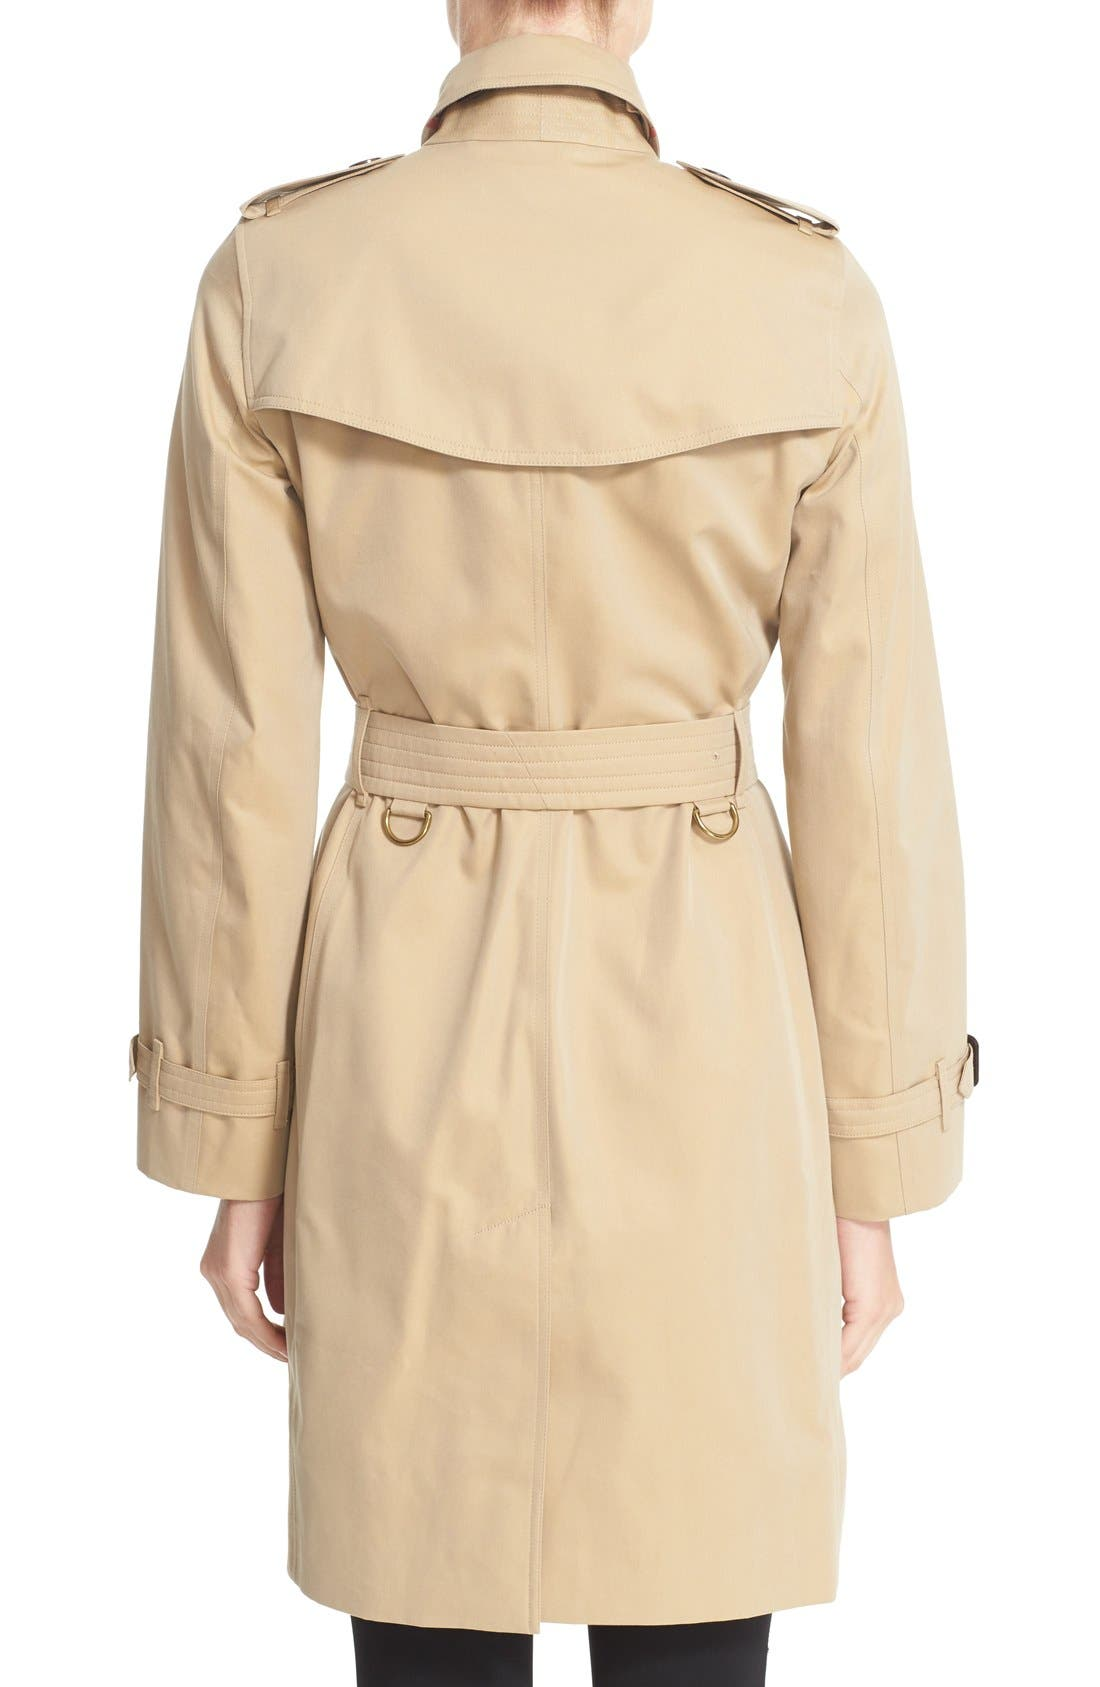 BURBERRY,                             Kensington Long Trench Coat,                             Alternate thumbnail 2, color,                             HONEY